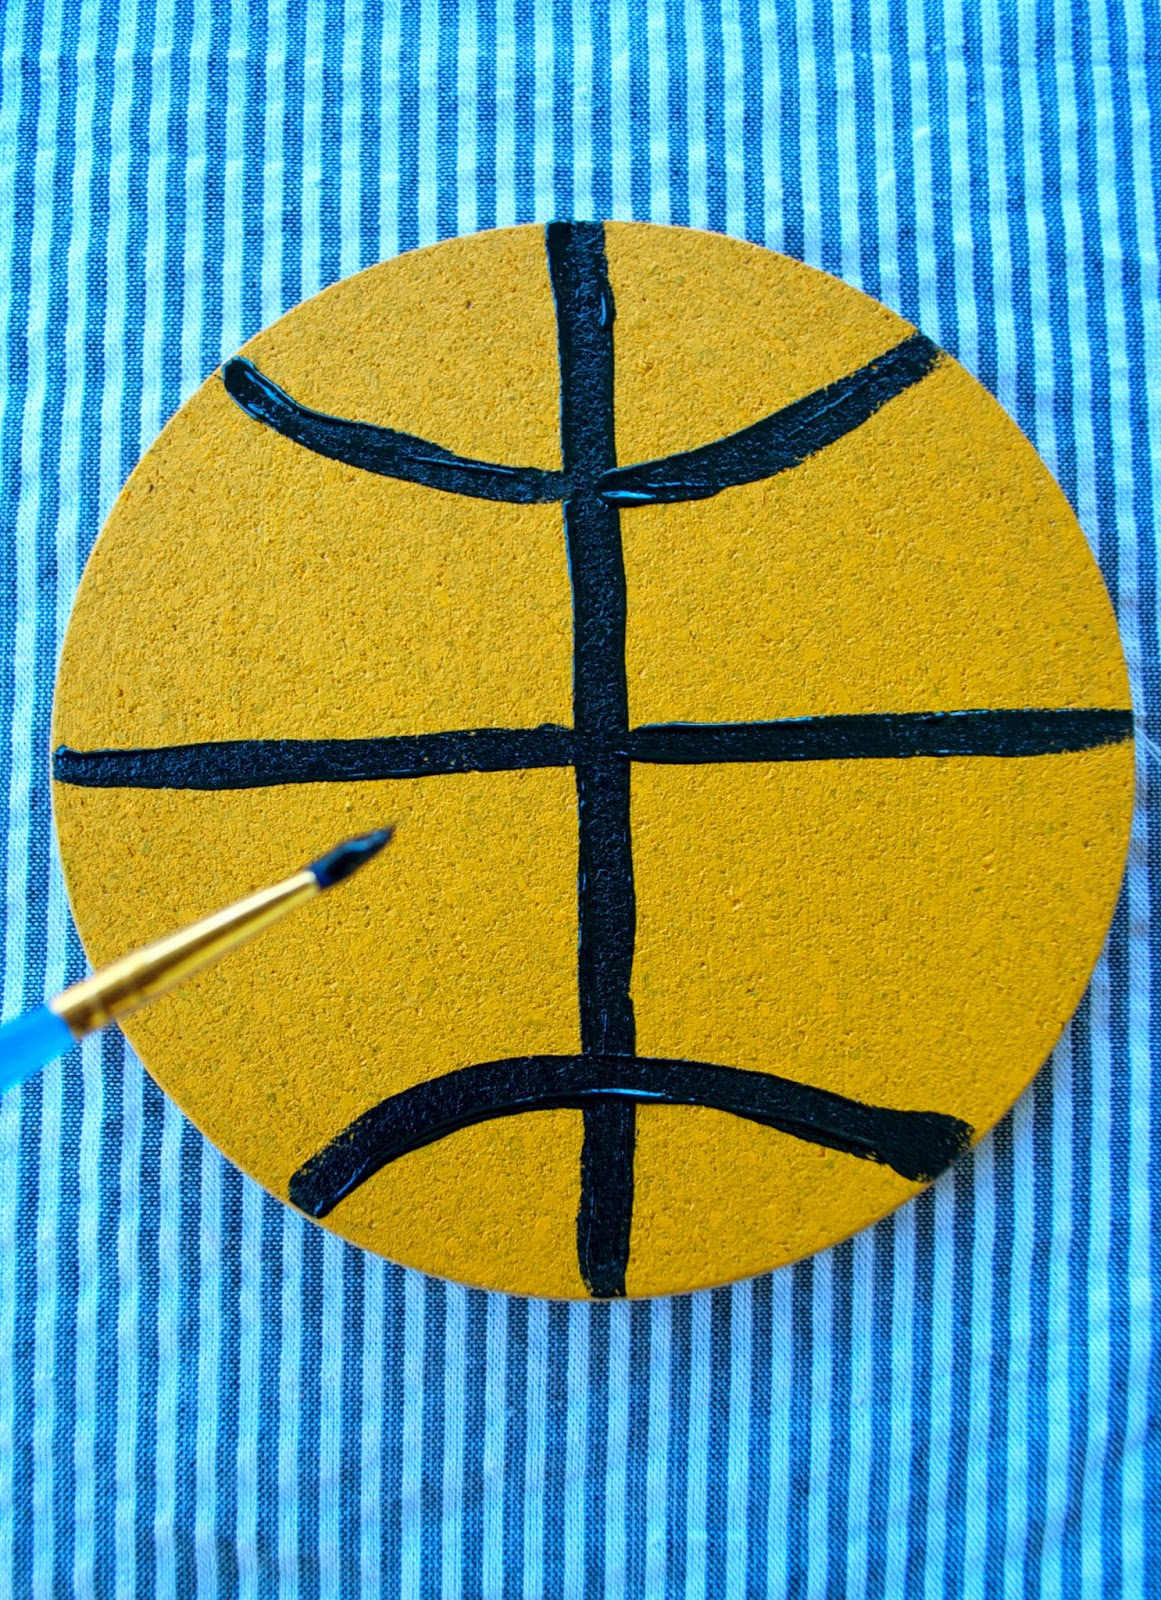 Basketball Party Craft DIYs - 3 fun things to make for March Madness - www.jacolynmurphy.com